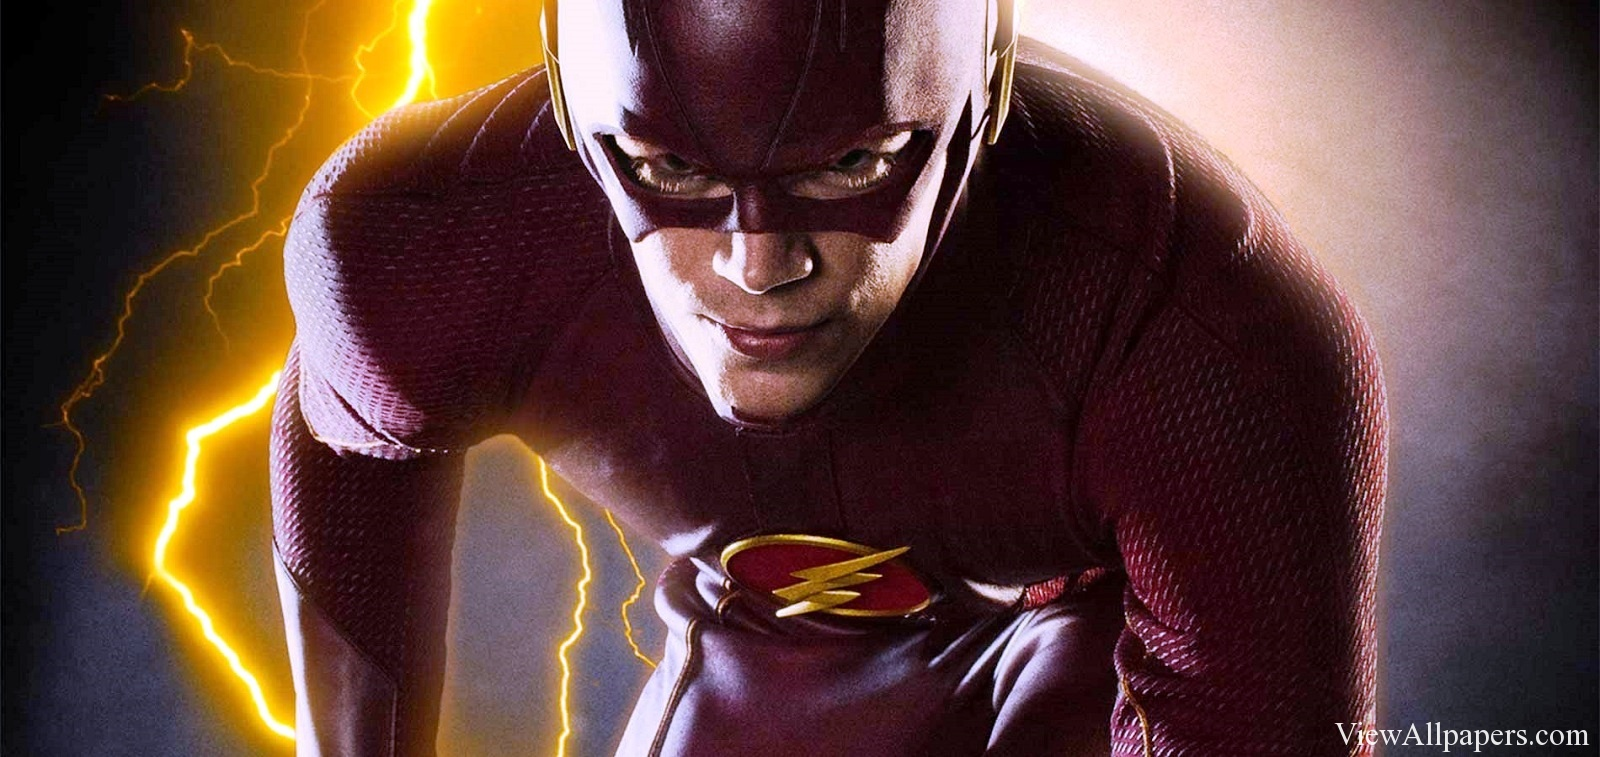 The Flash Wallpaper High Resolution Wallpaper download The Flash 1600x757